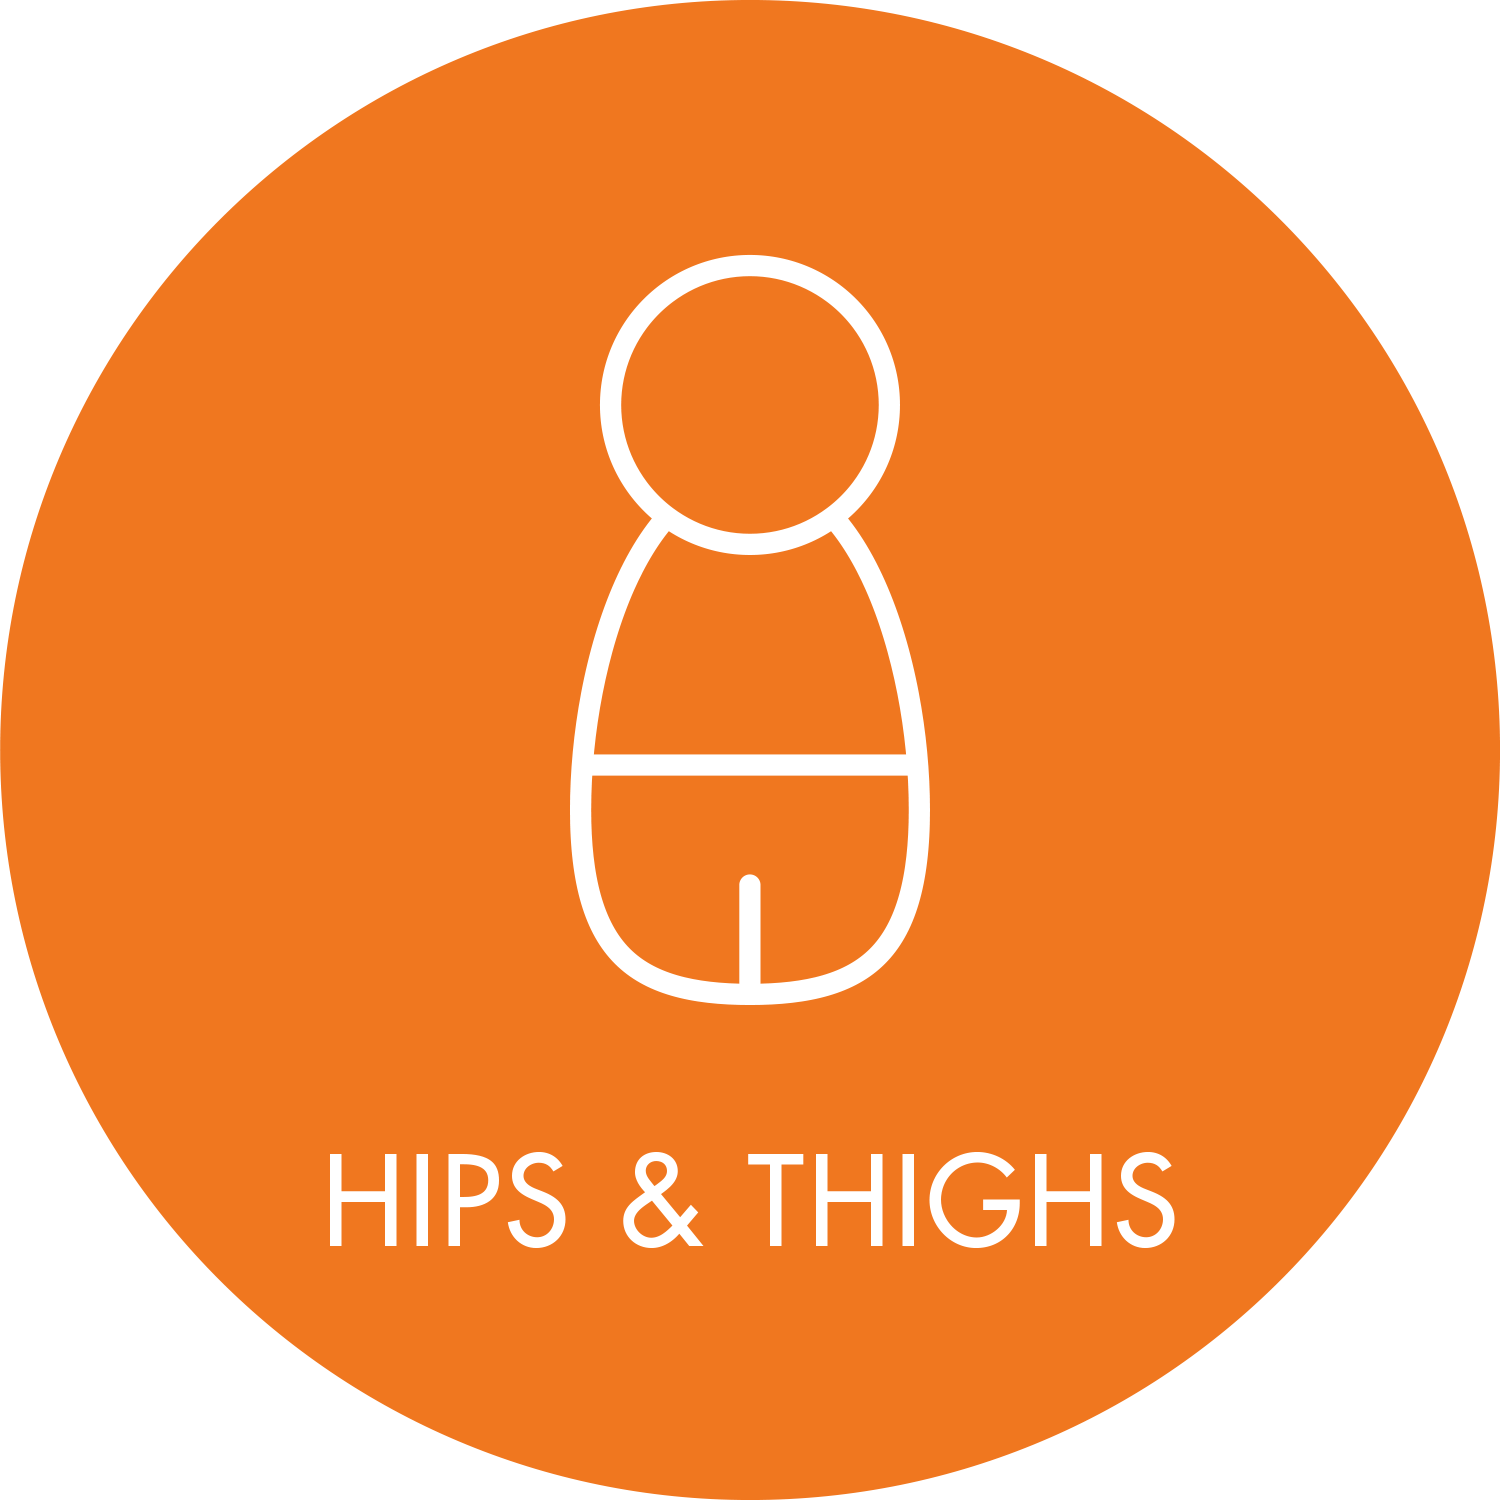 Circle_Icon_Text_Fat_Spot_Hips_Thighs.png